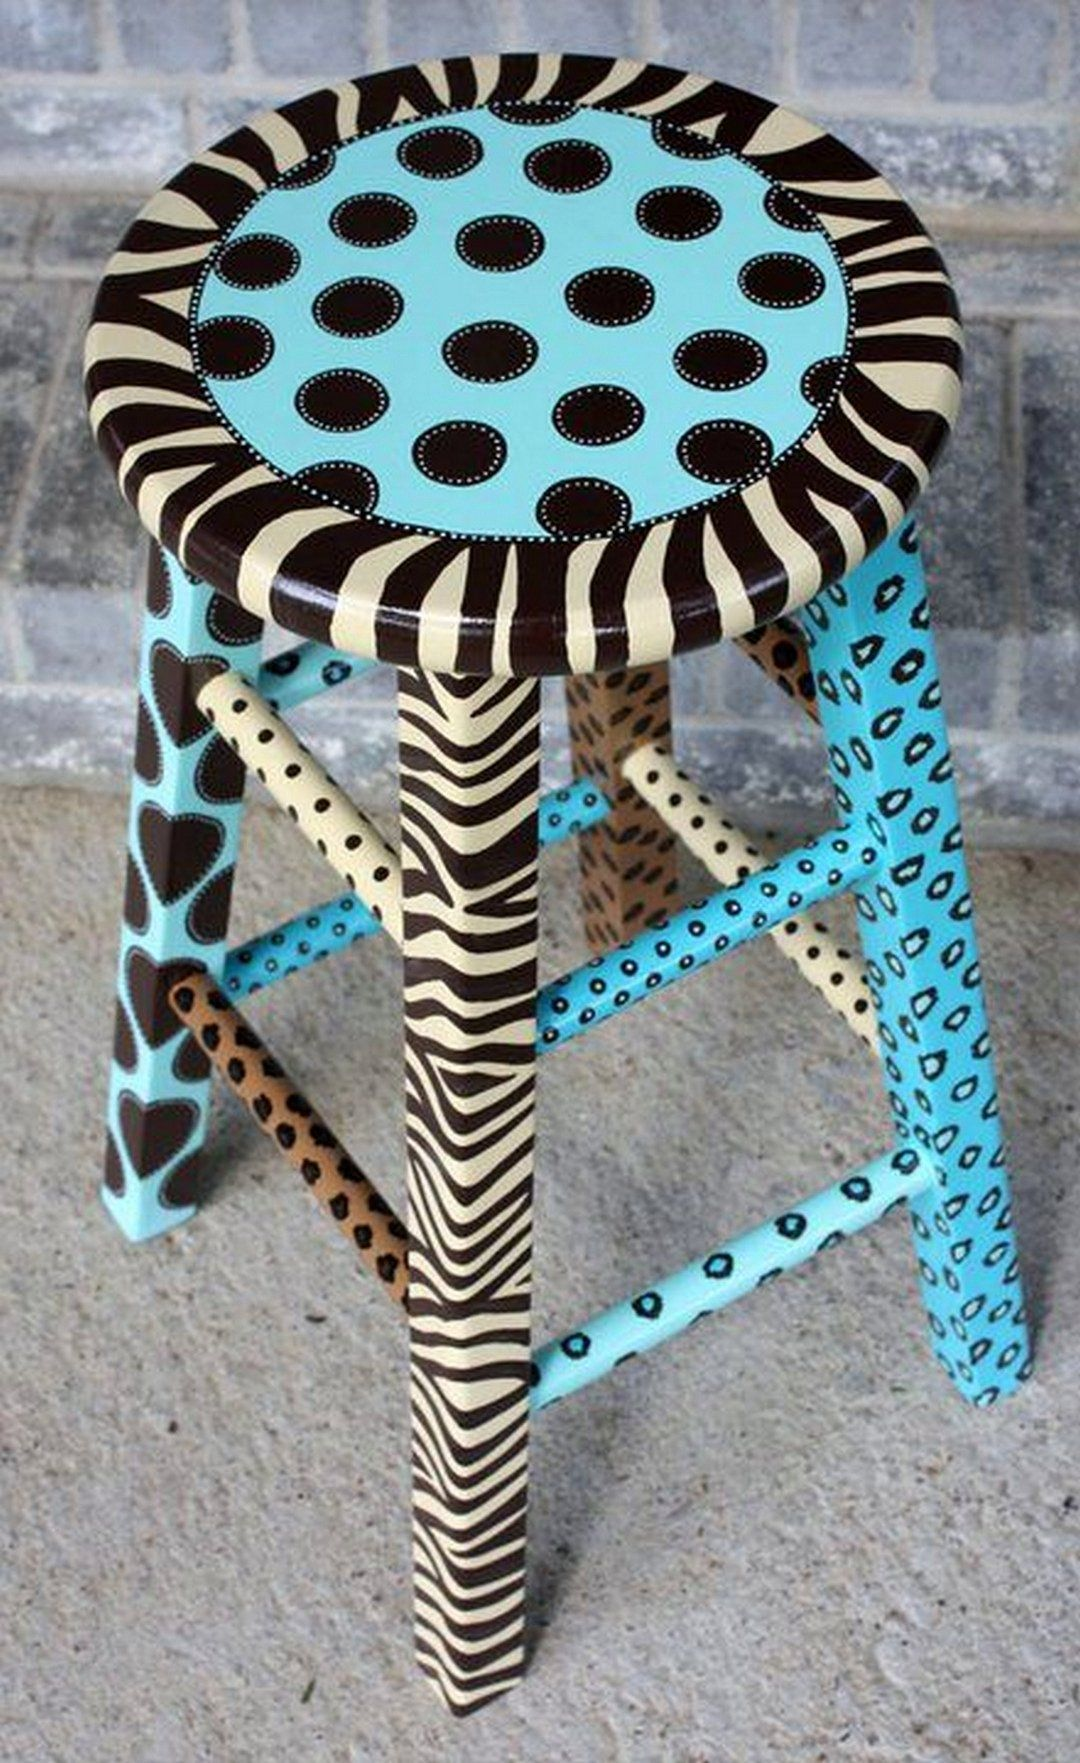 81 Cool Painted Stool Inspirations is part of Painted furniture - Finding the perfect baby present may take time, creativity and creativity  When searching for the right present, try to find the one that may grow with the kid through the years  People have a tendenc